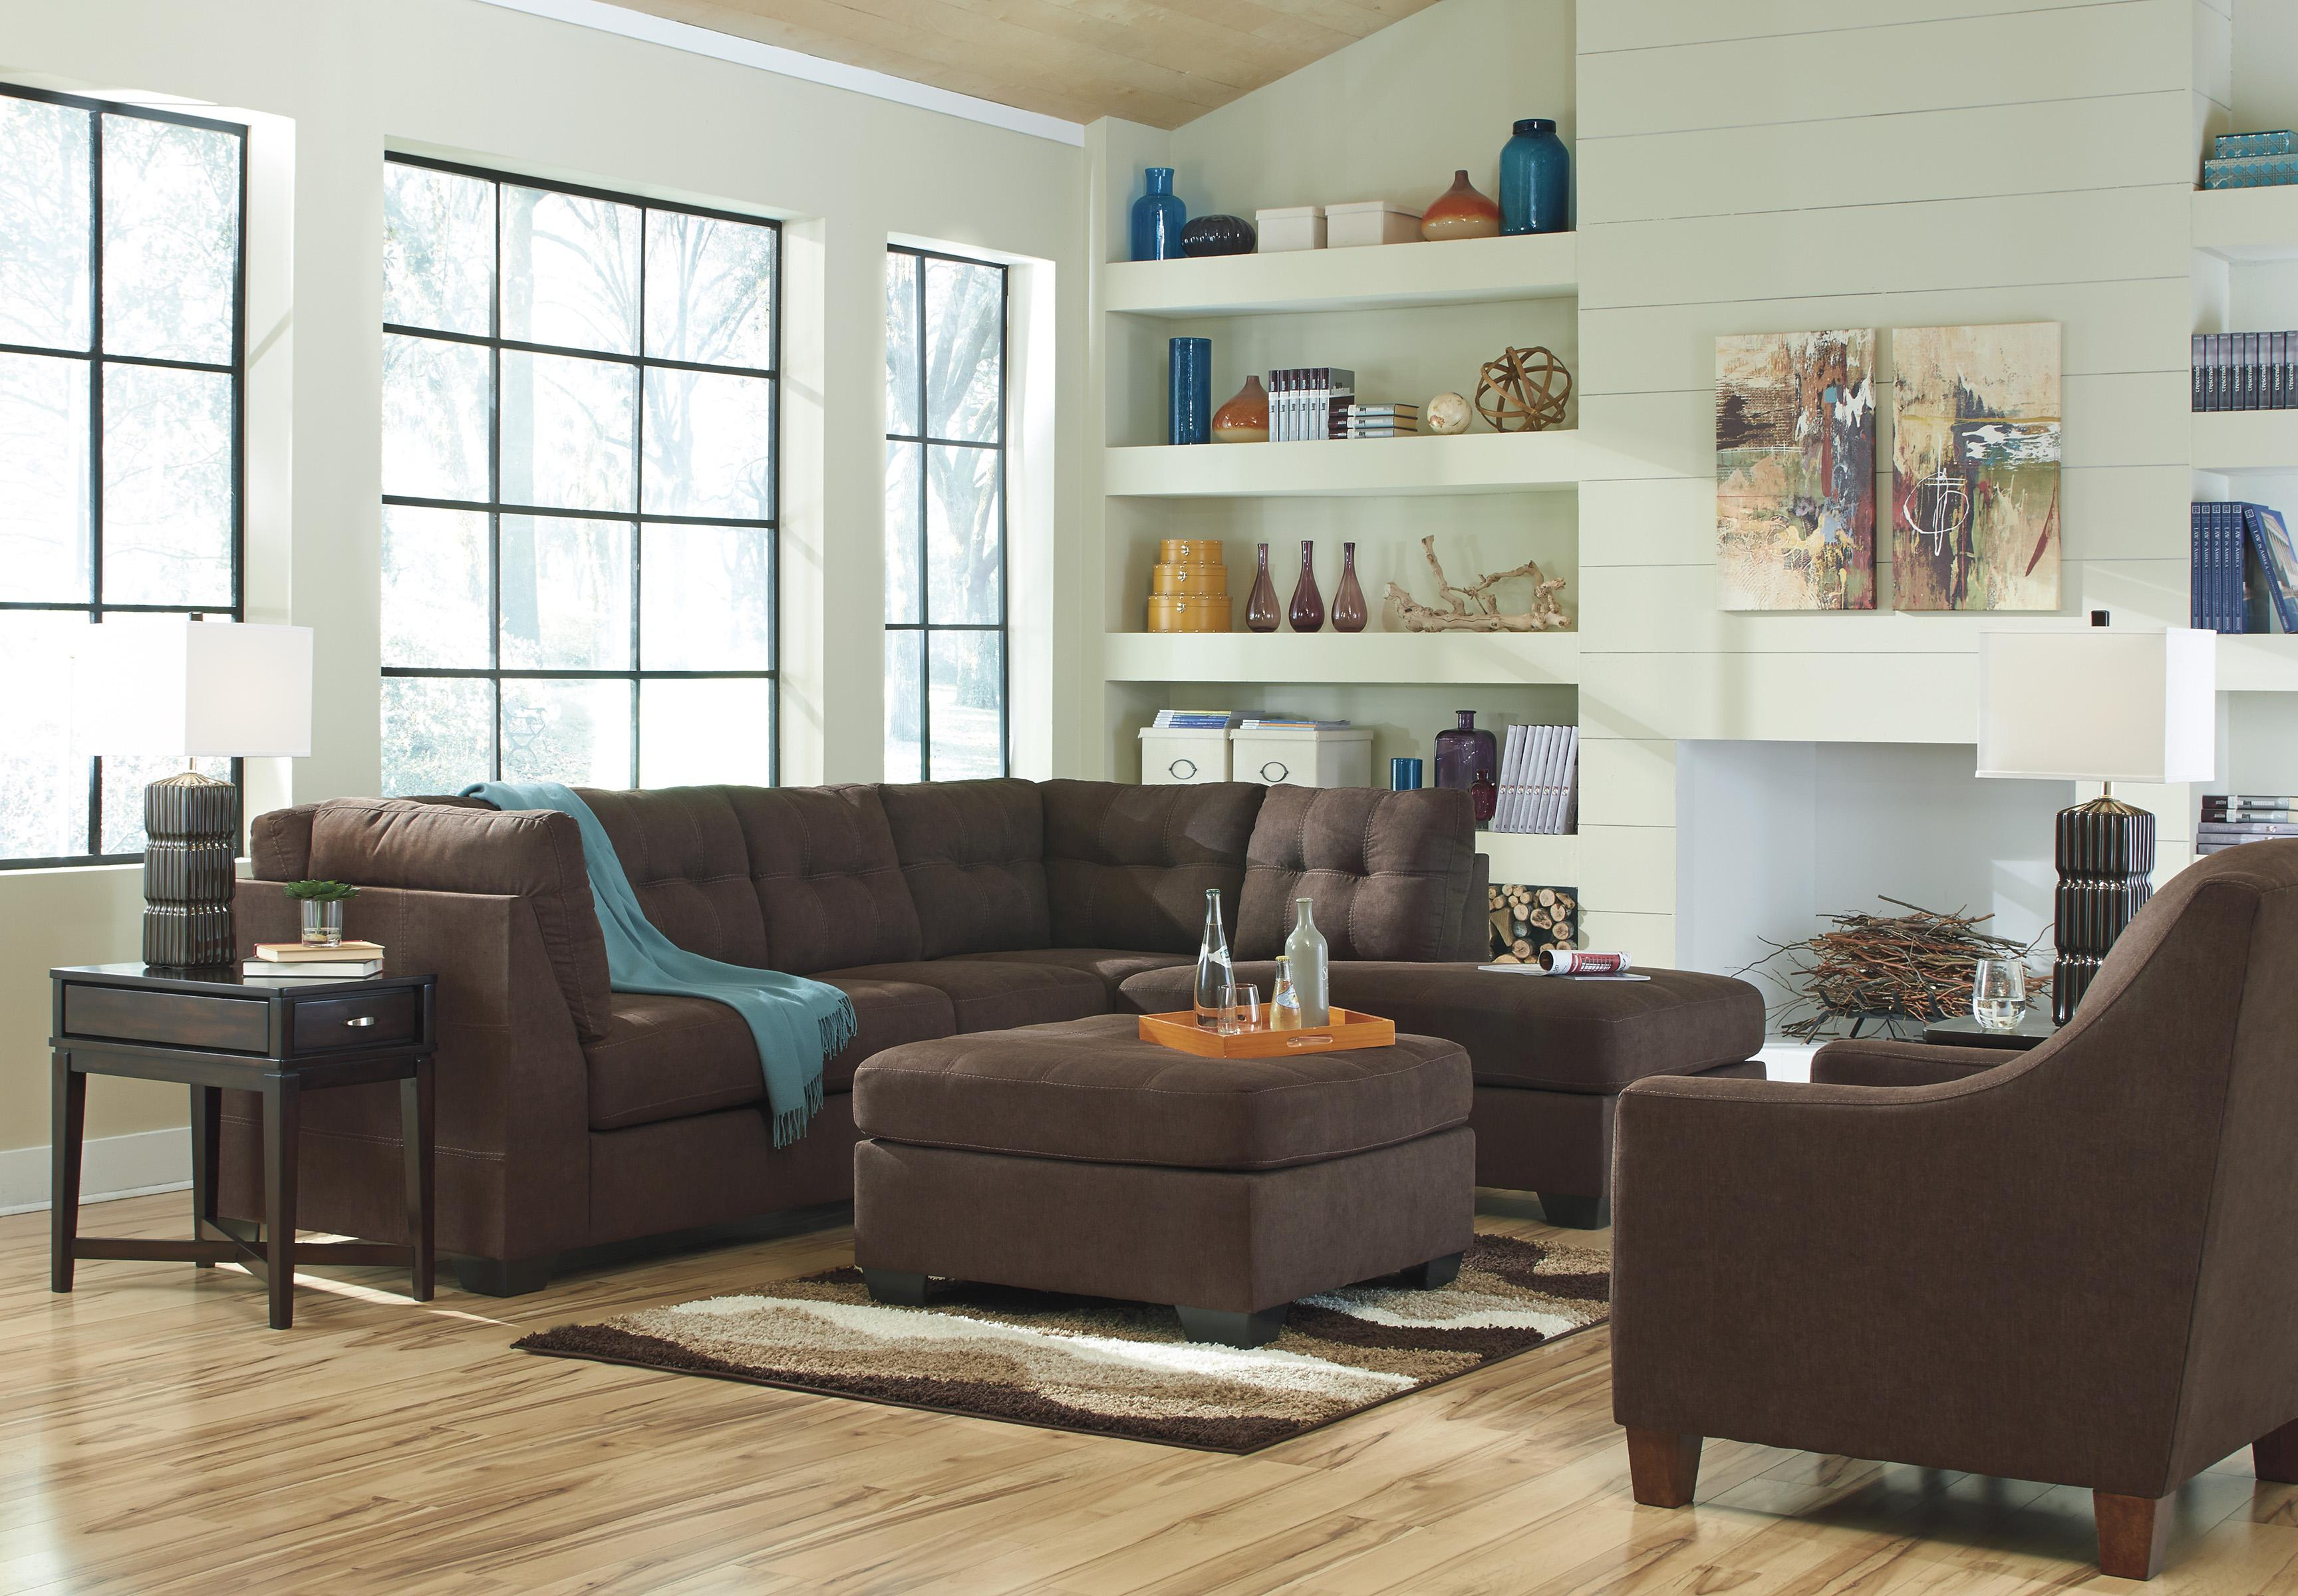 Benchcraft Maier - Walnut Stationary Living Room Group - Item Number: 45201 Living Room Group 3